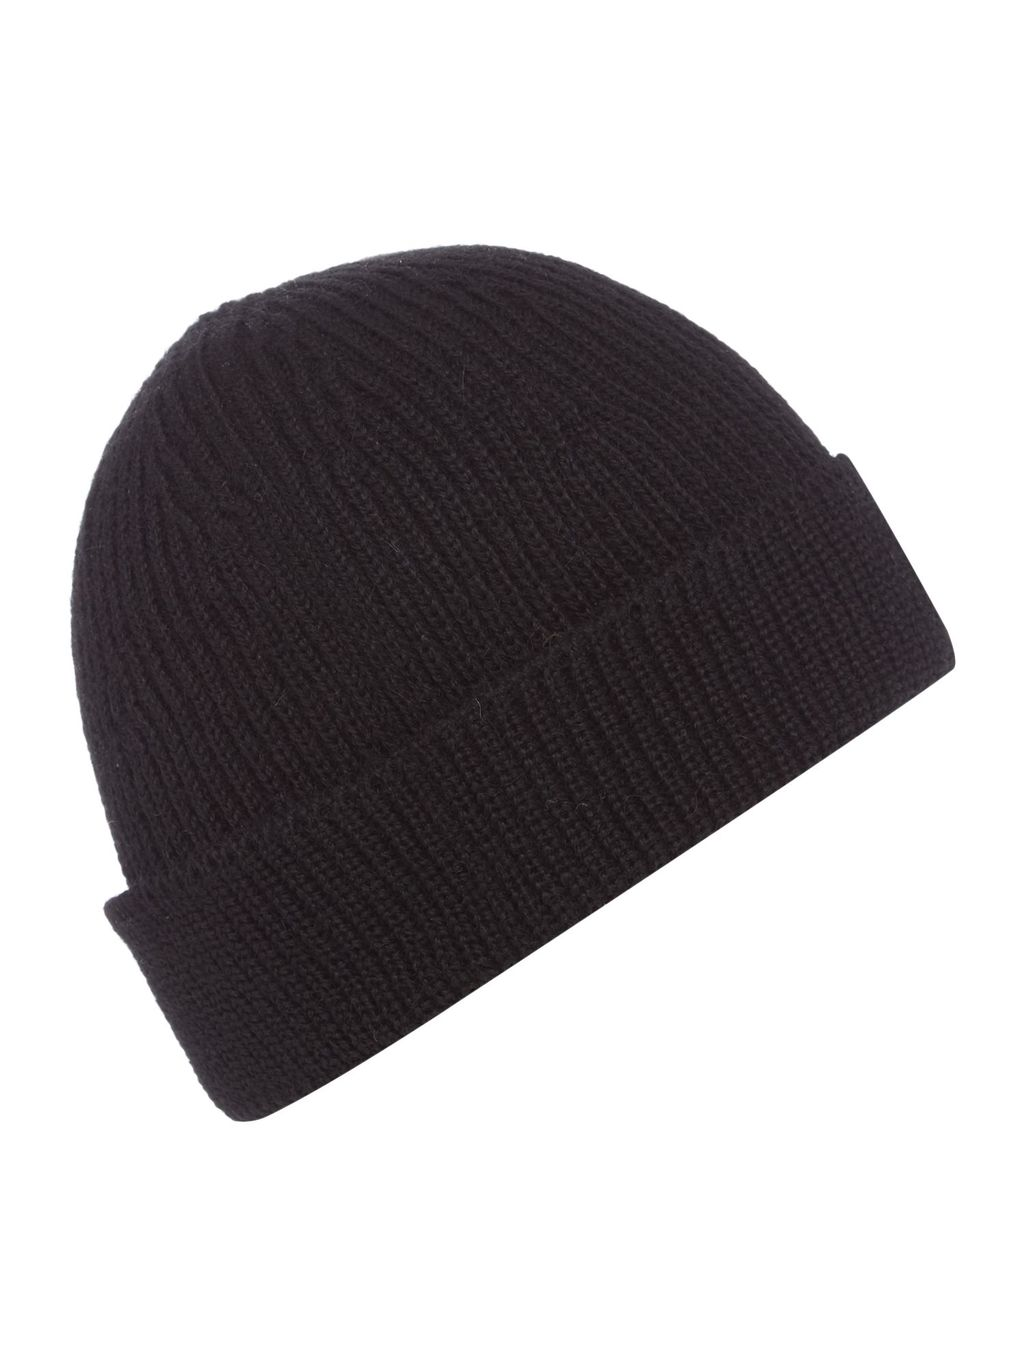 Knitted Beanie Hat, Black - predominant colour: black; occasions: casual; type of pattern: standard; style: beanie; size: standard; material: knits; pattern: plain; season: s/s 2016; wardrobe: basic